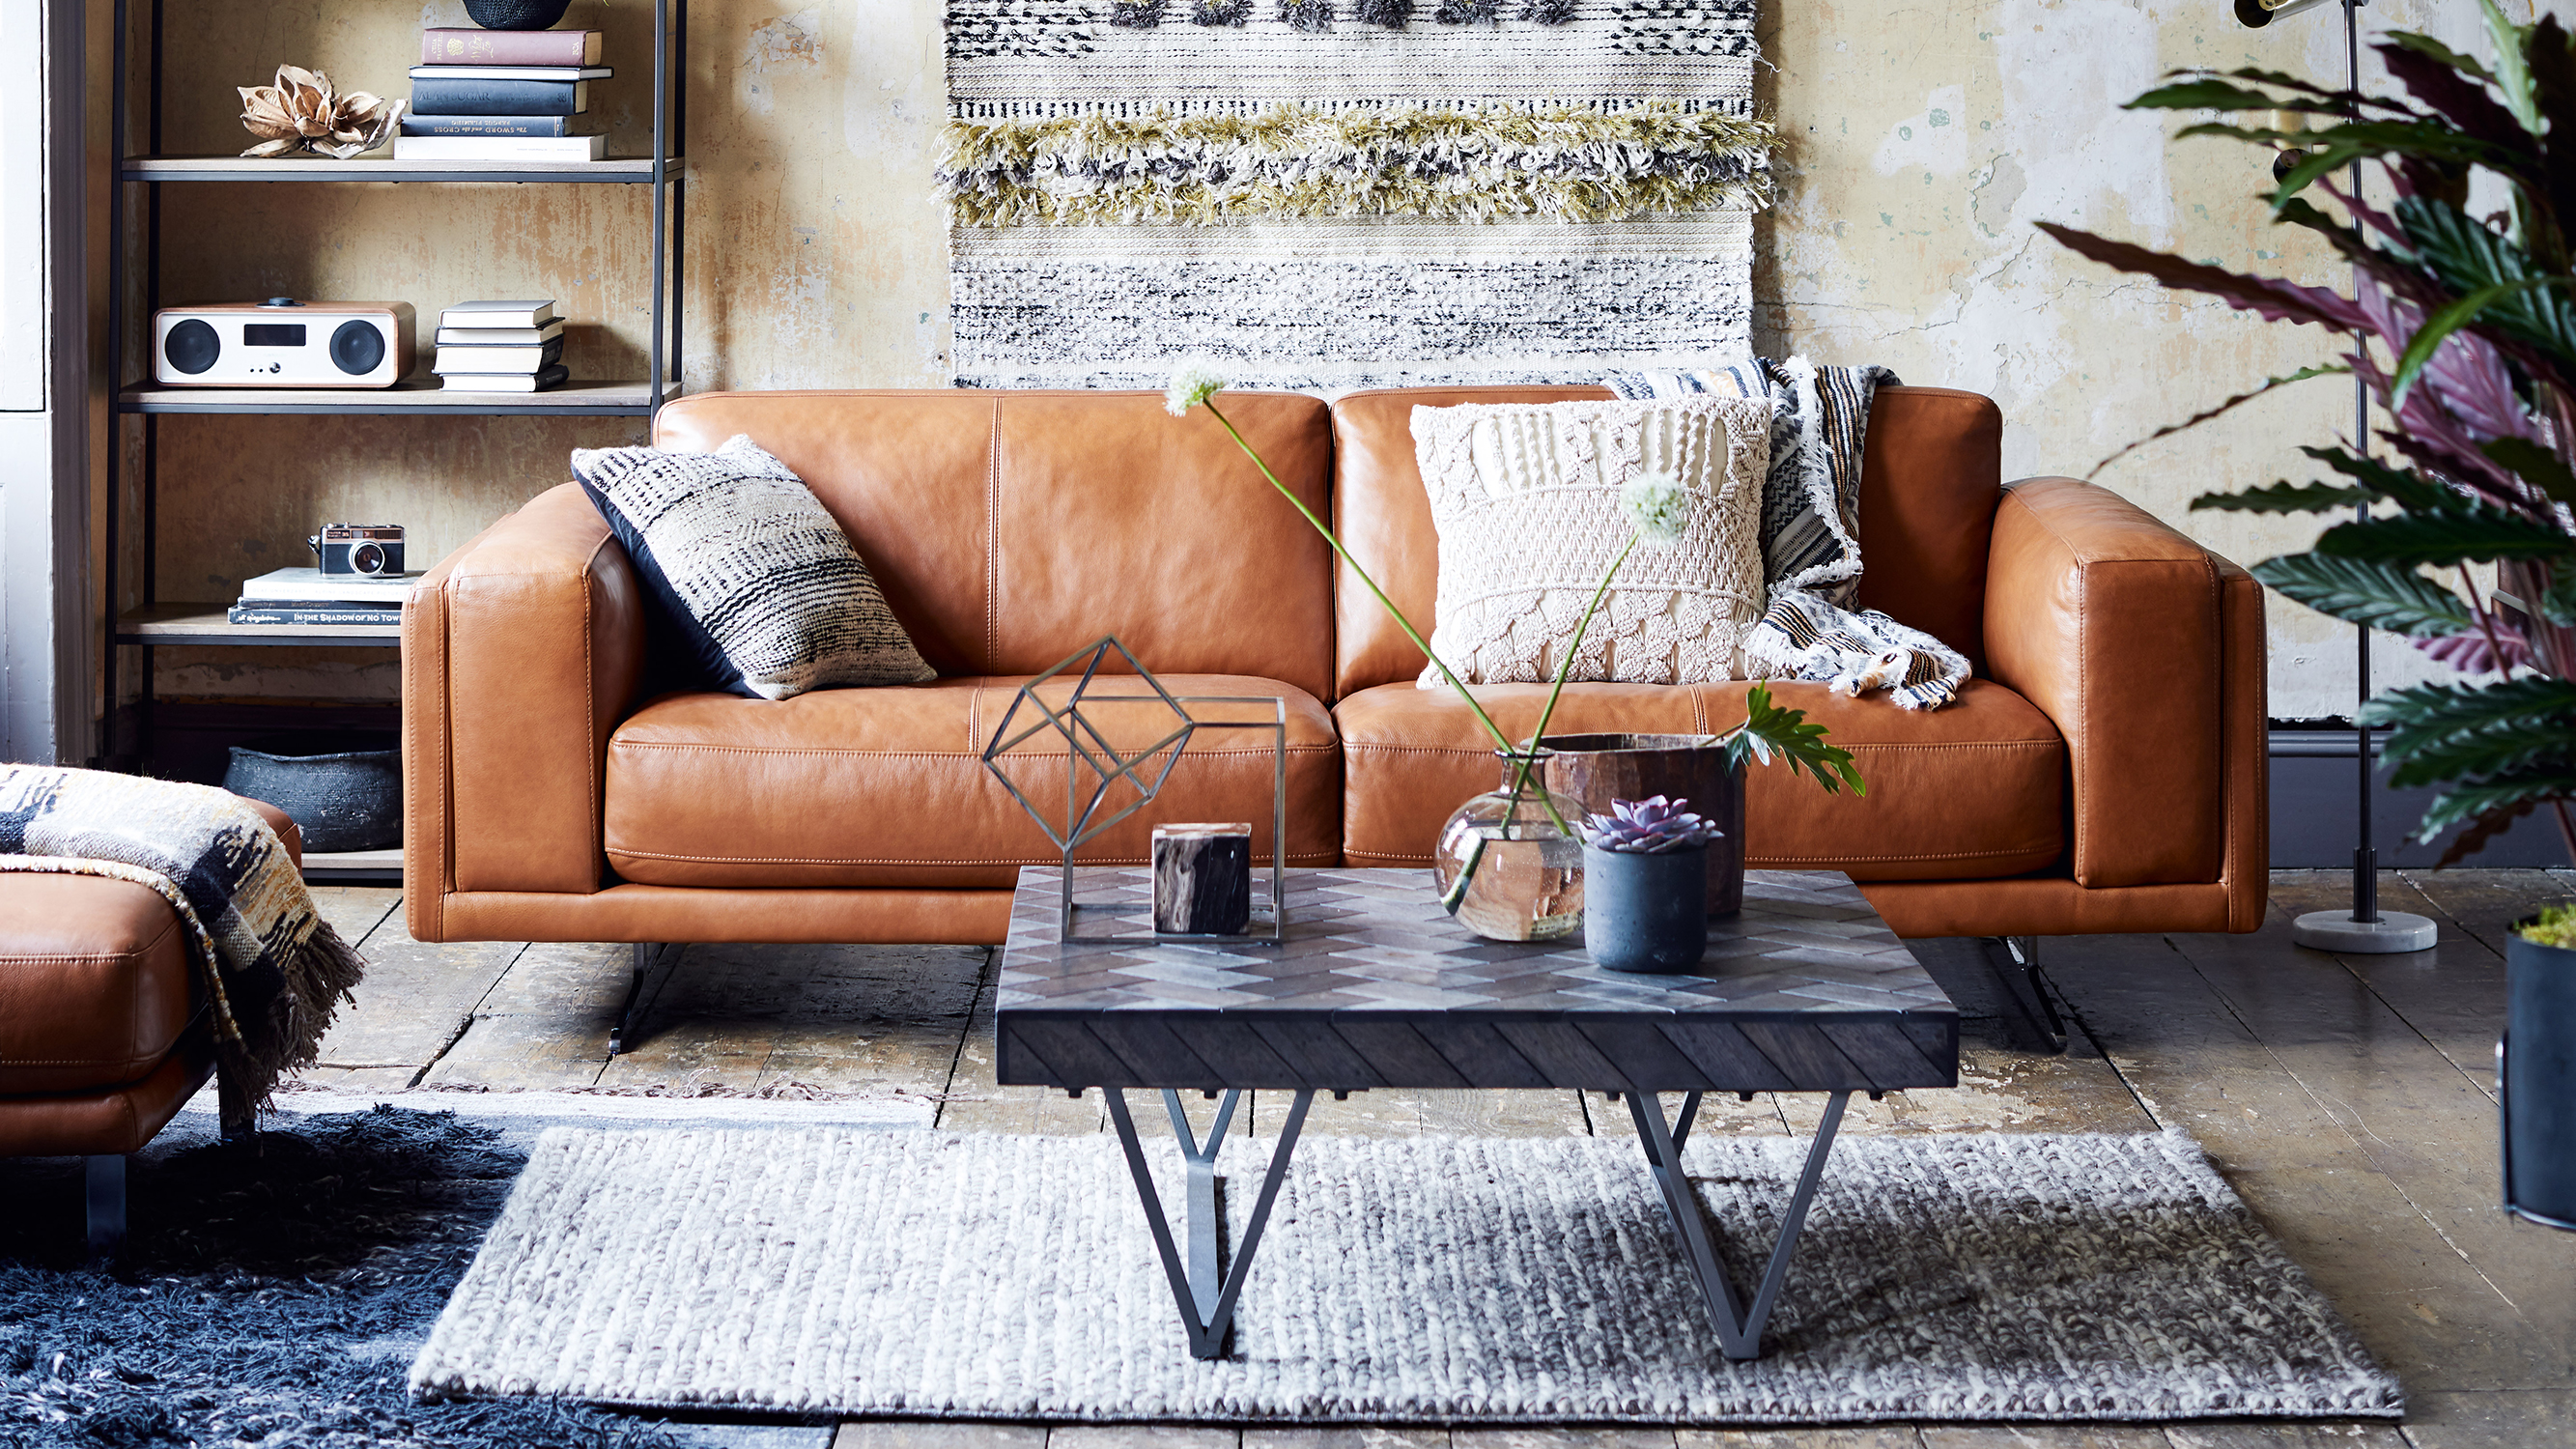 leather sofas dfs dog sofa beds uk the latest designed by and french connection home this 1970s style tan couch stands on metal legs